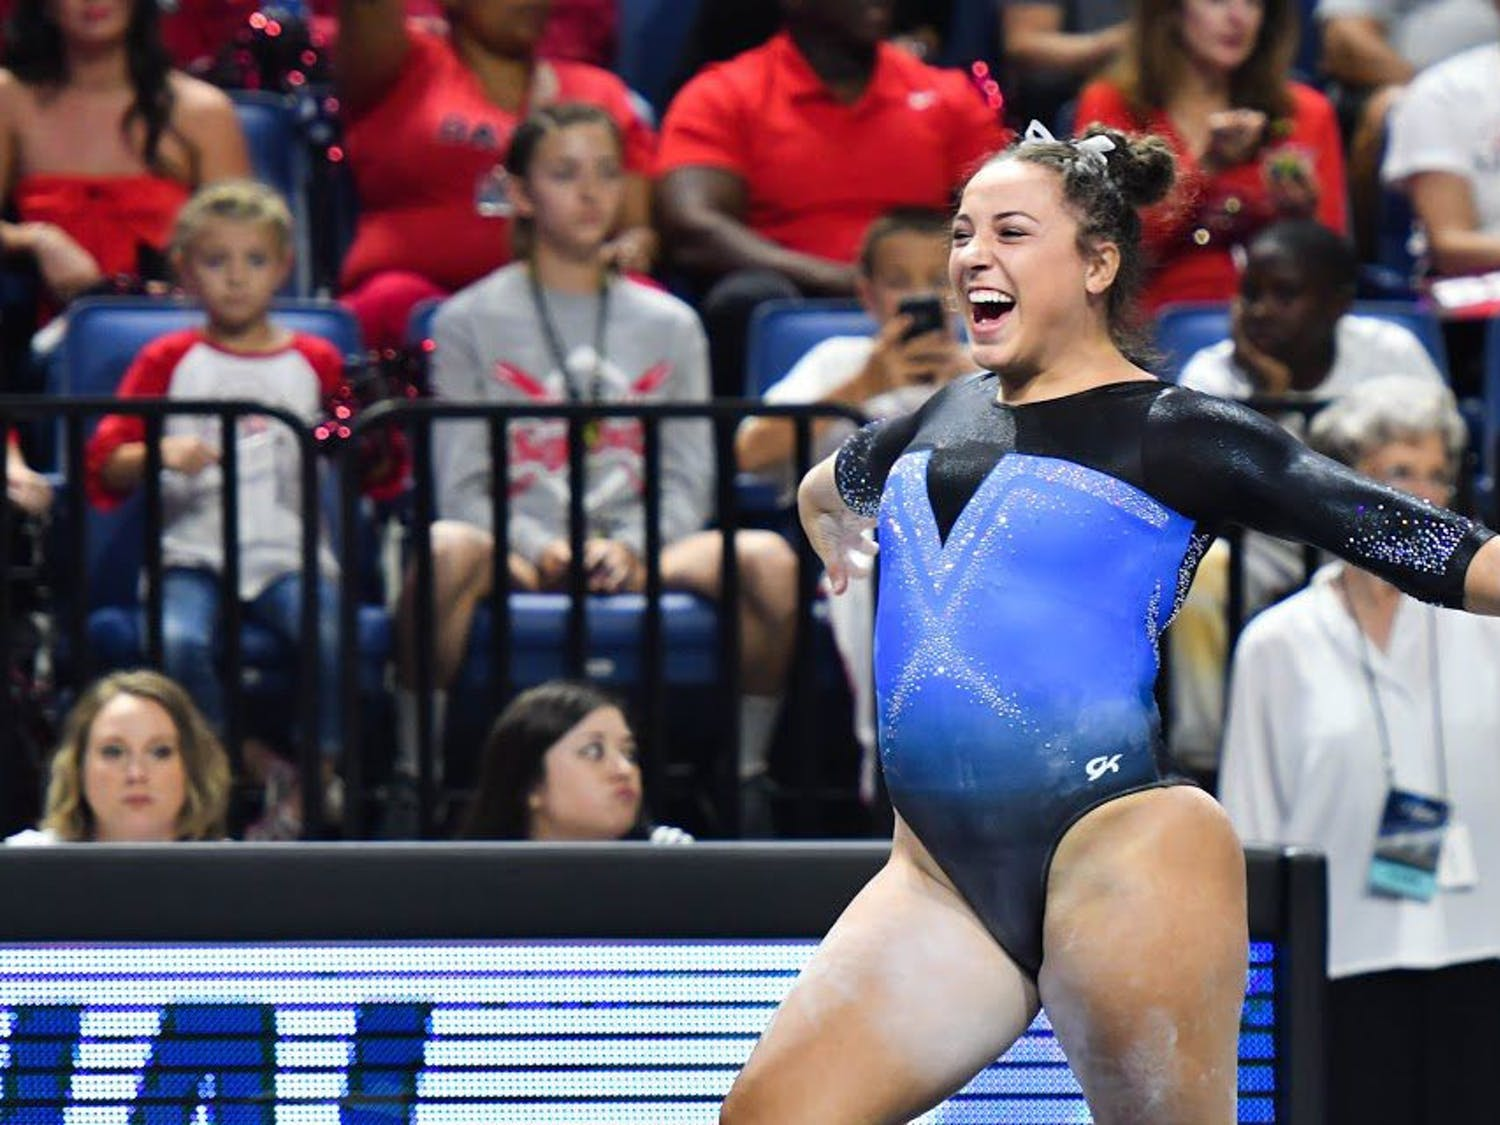 UF gymnast Amelia Hundley performs a routine during the NCAA Gainesville Regional on April 1, 2017, in the O'Connell Center.